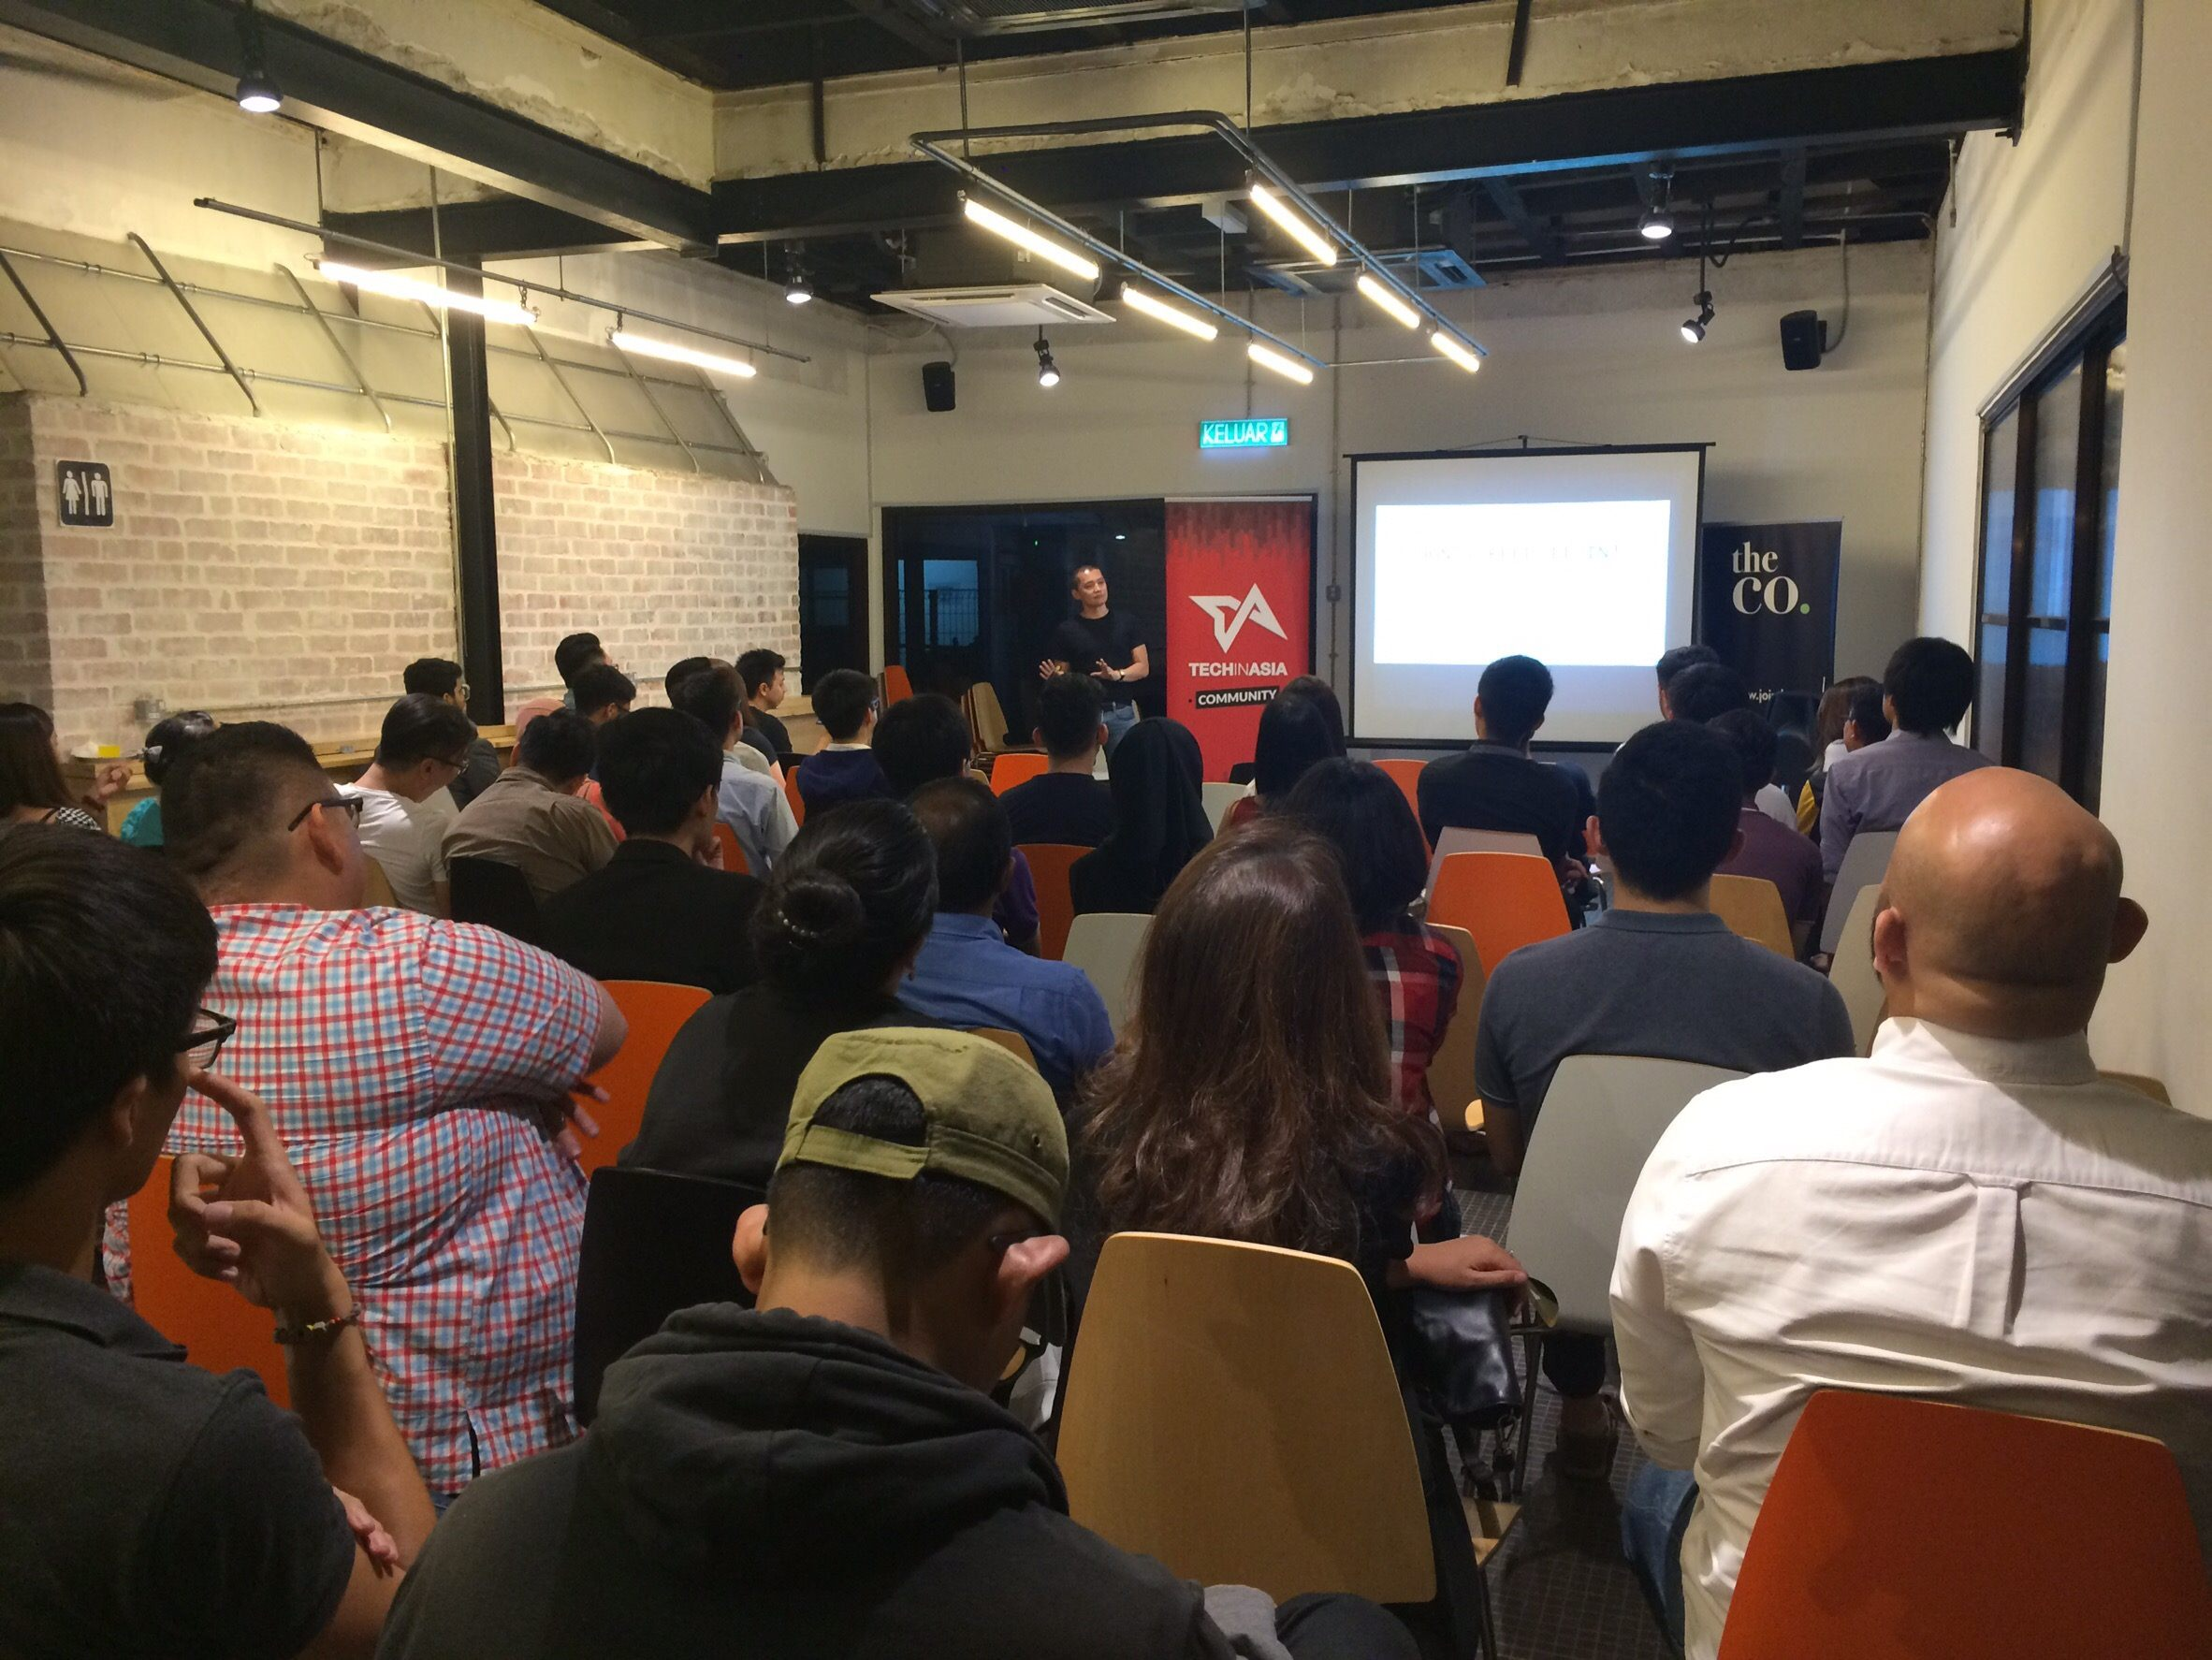 Introducing the tech in asia city chapters tech in asia city chapters meetup kuala lumpur q1 2017 falaconquin